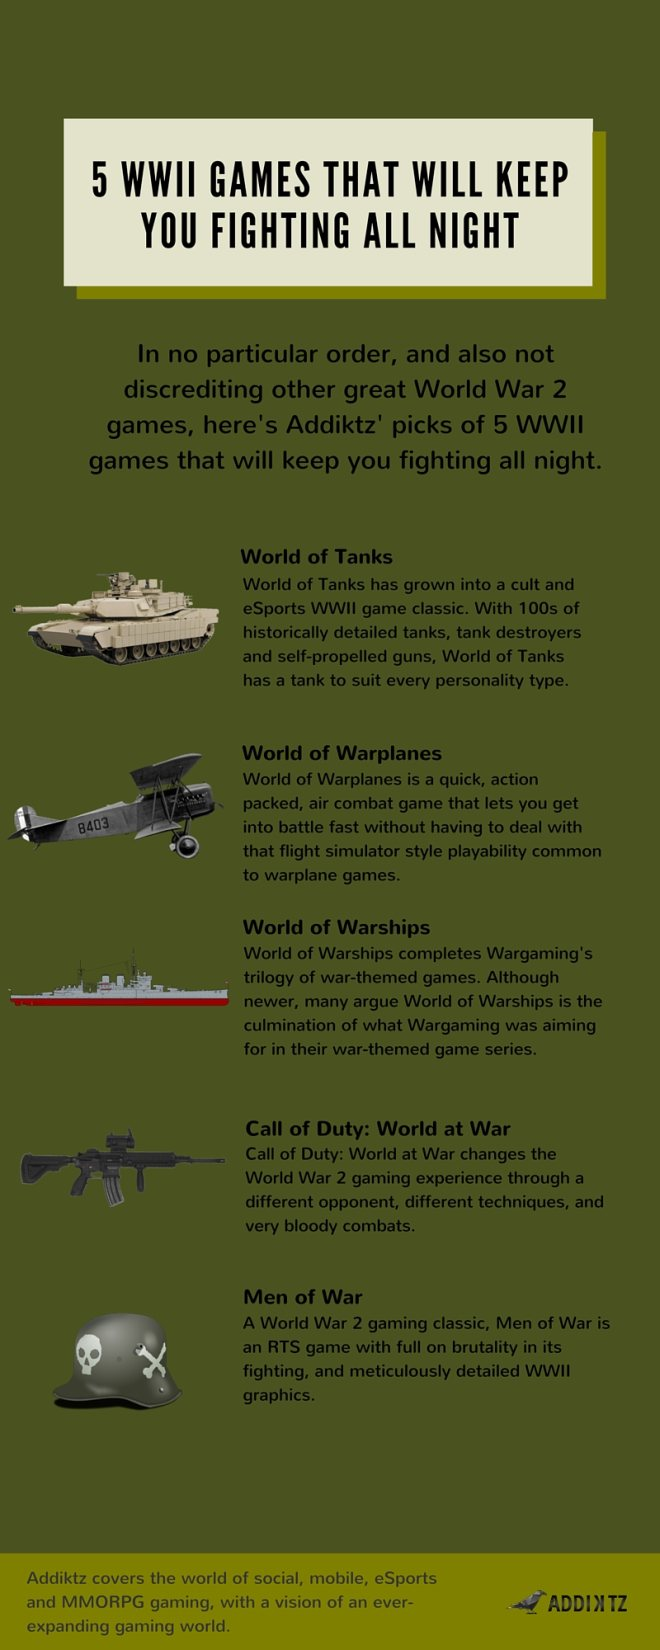 5-WWII-Games-That-Will-Keep-You-Fighting-All-Night-infographic